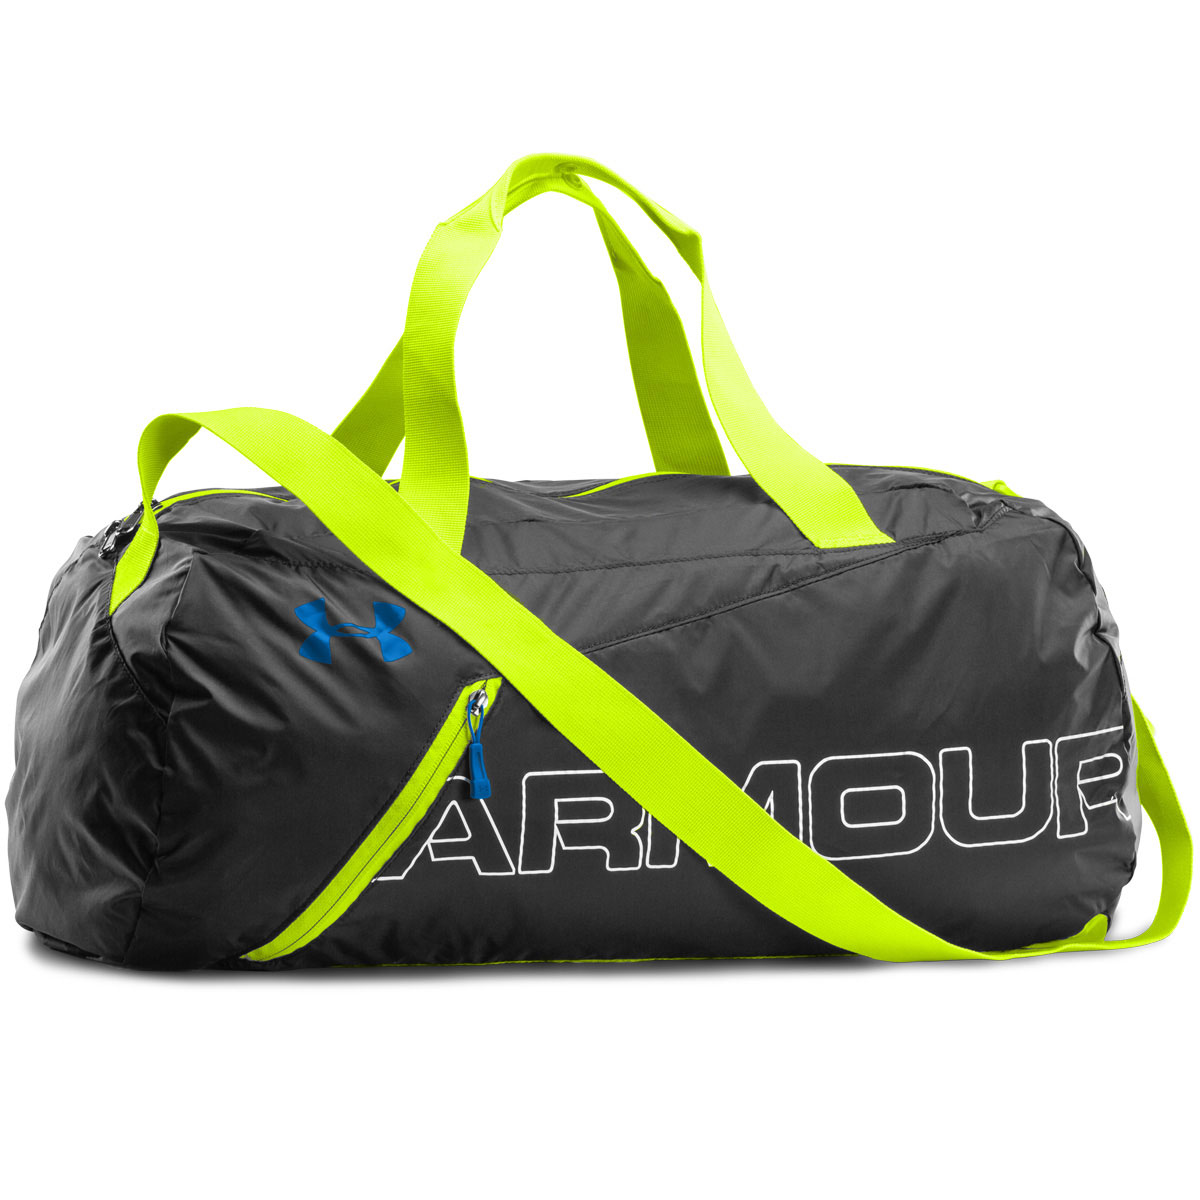 Traveling Under Armour Duffle Bag